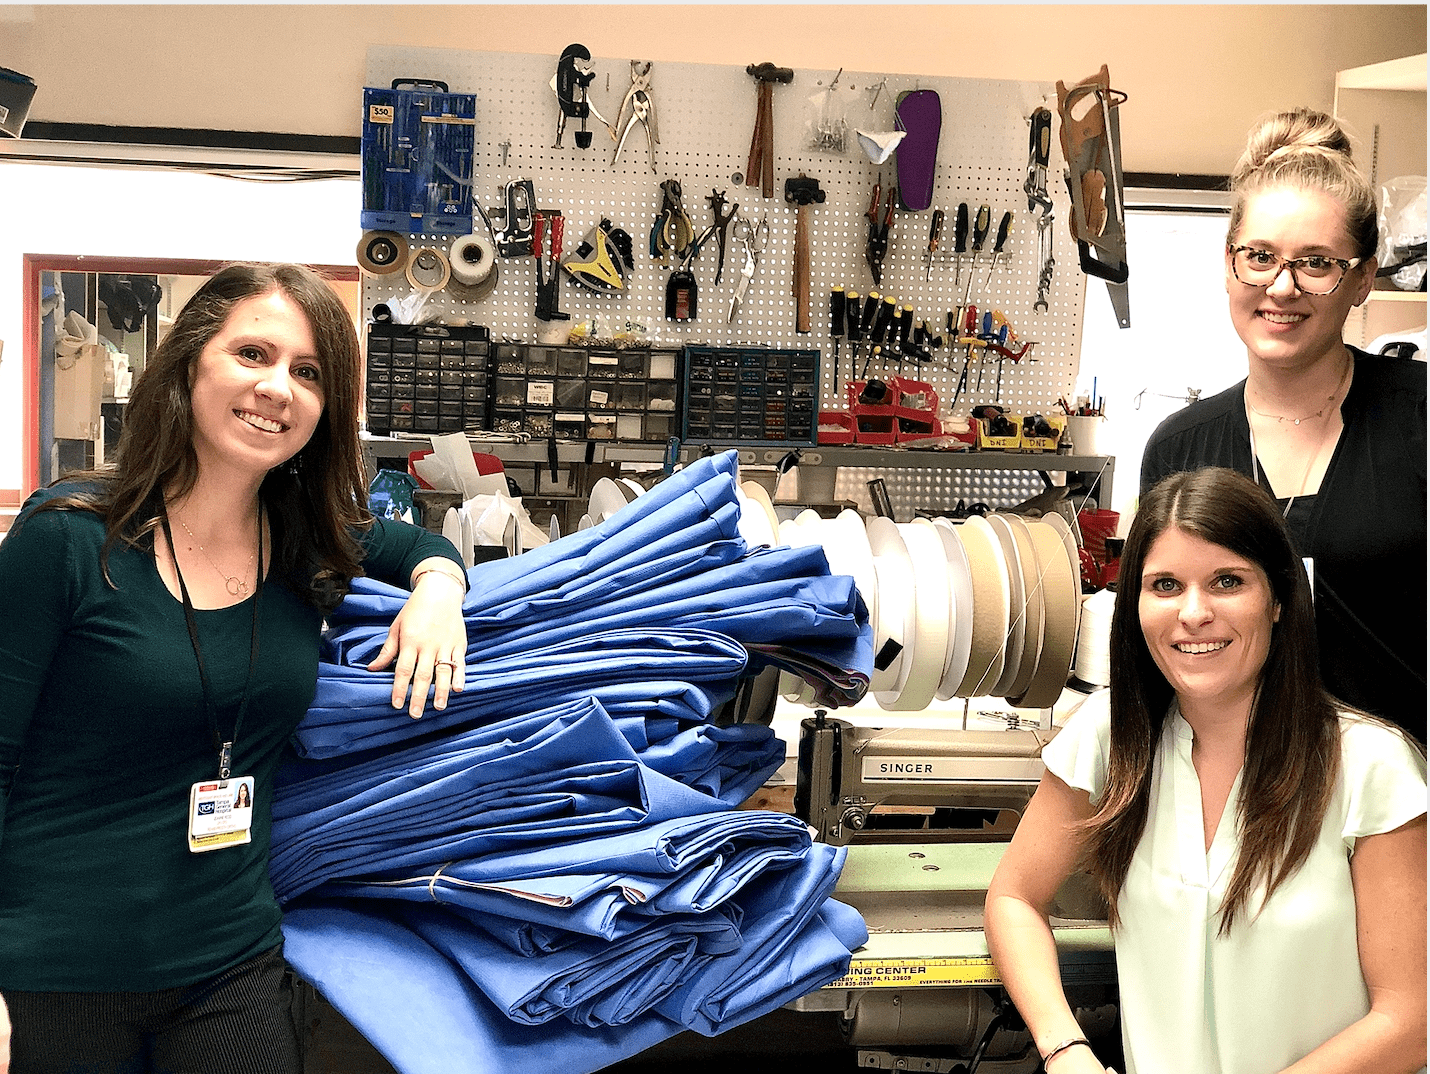 WCBL practitioners make sleeping bags for the homeless